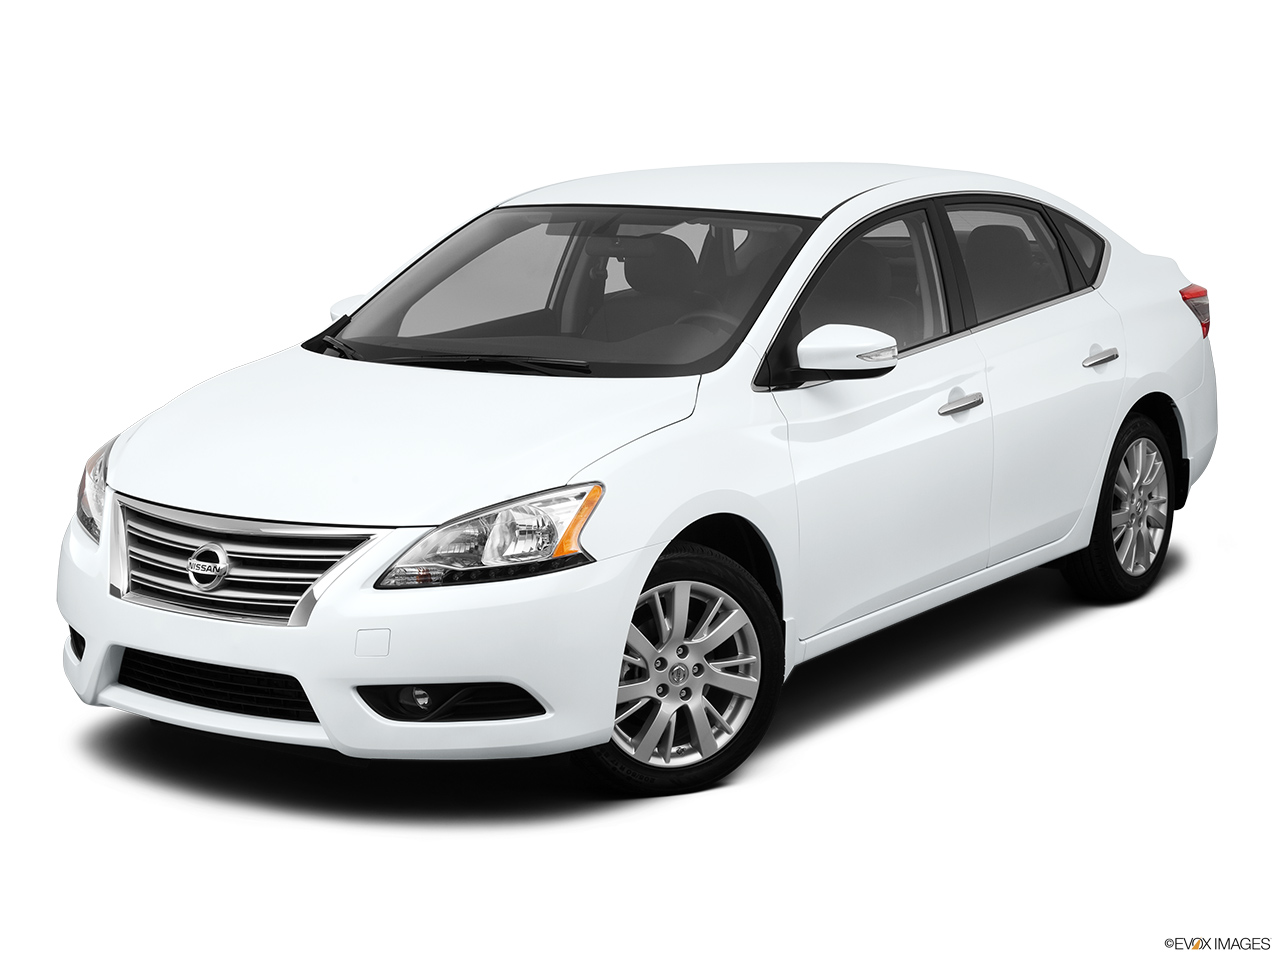 2014 nissan sentra sedan i4 cvt sl. Black Bedroom Furniture Sets. Home Design Ideas